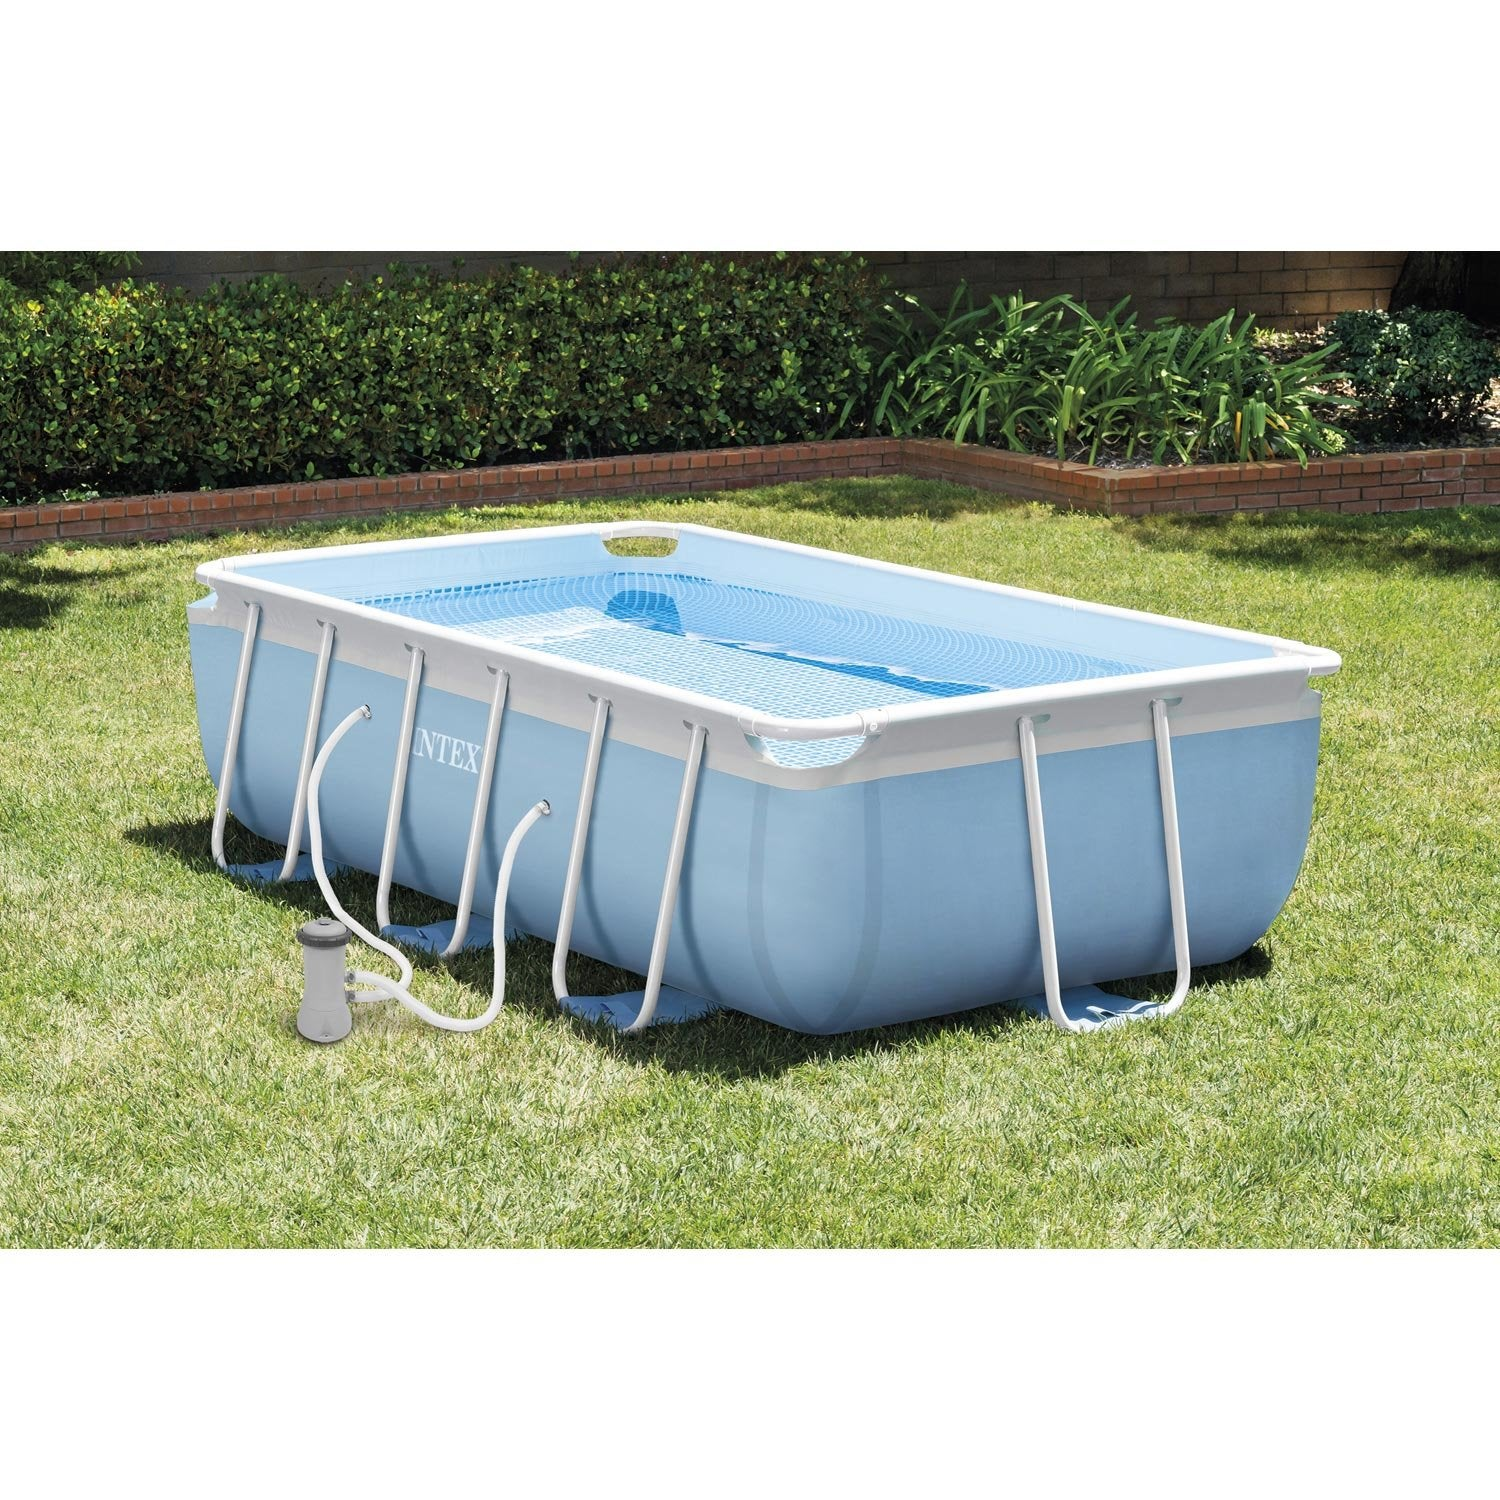 Piscine hors sol autoportante tubulaire intex l 3 4 x l 2 for Piscine hors sol rectangulaire pas cher